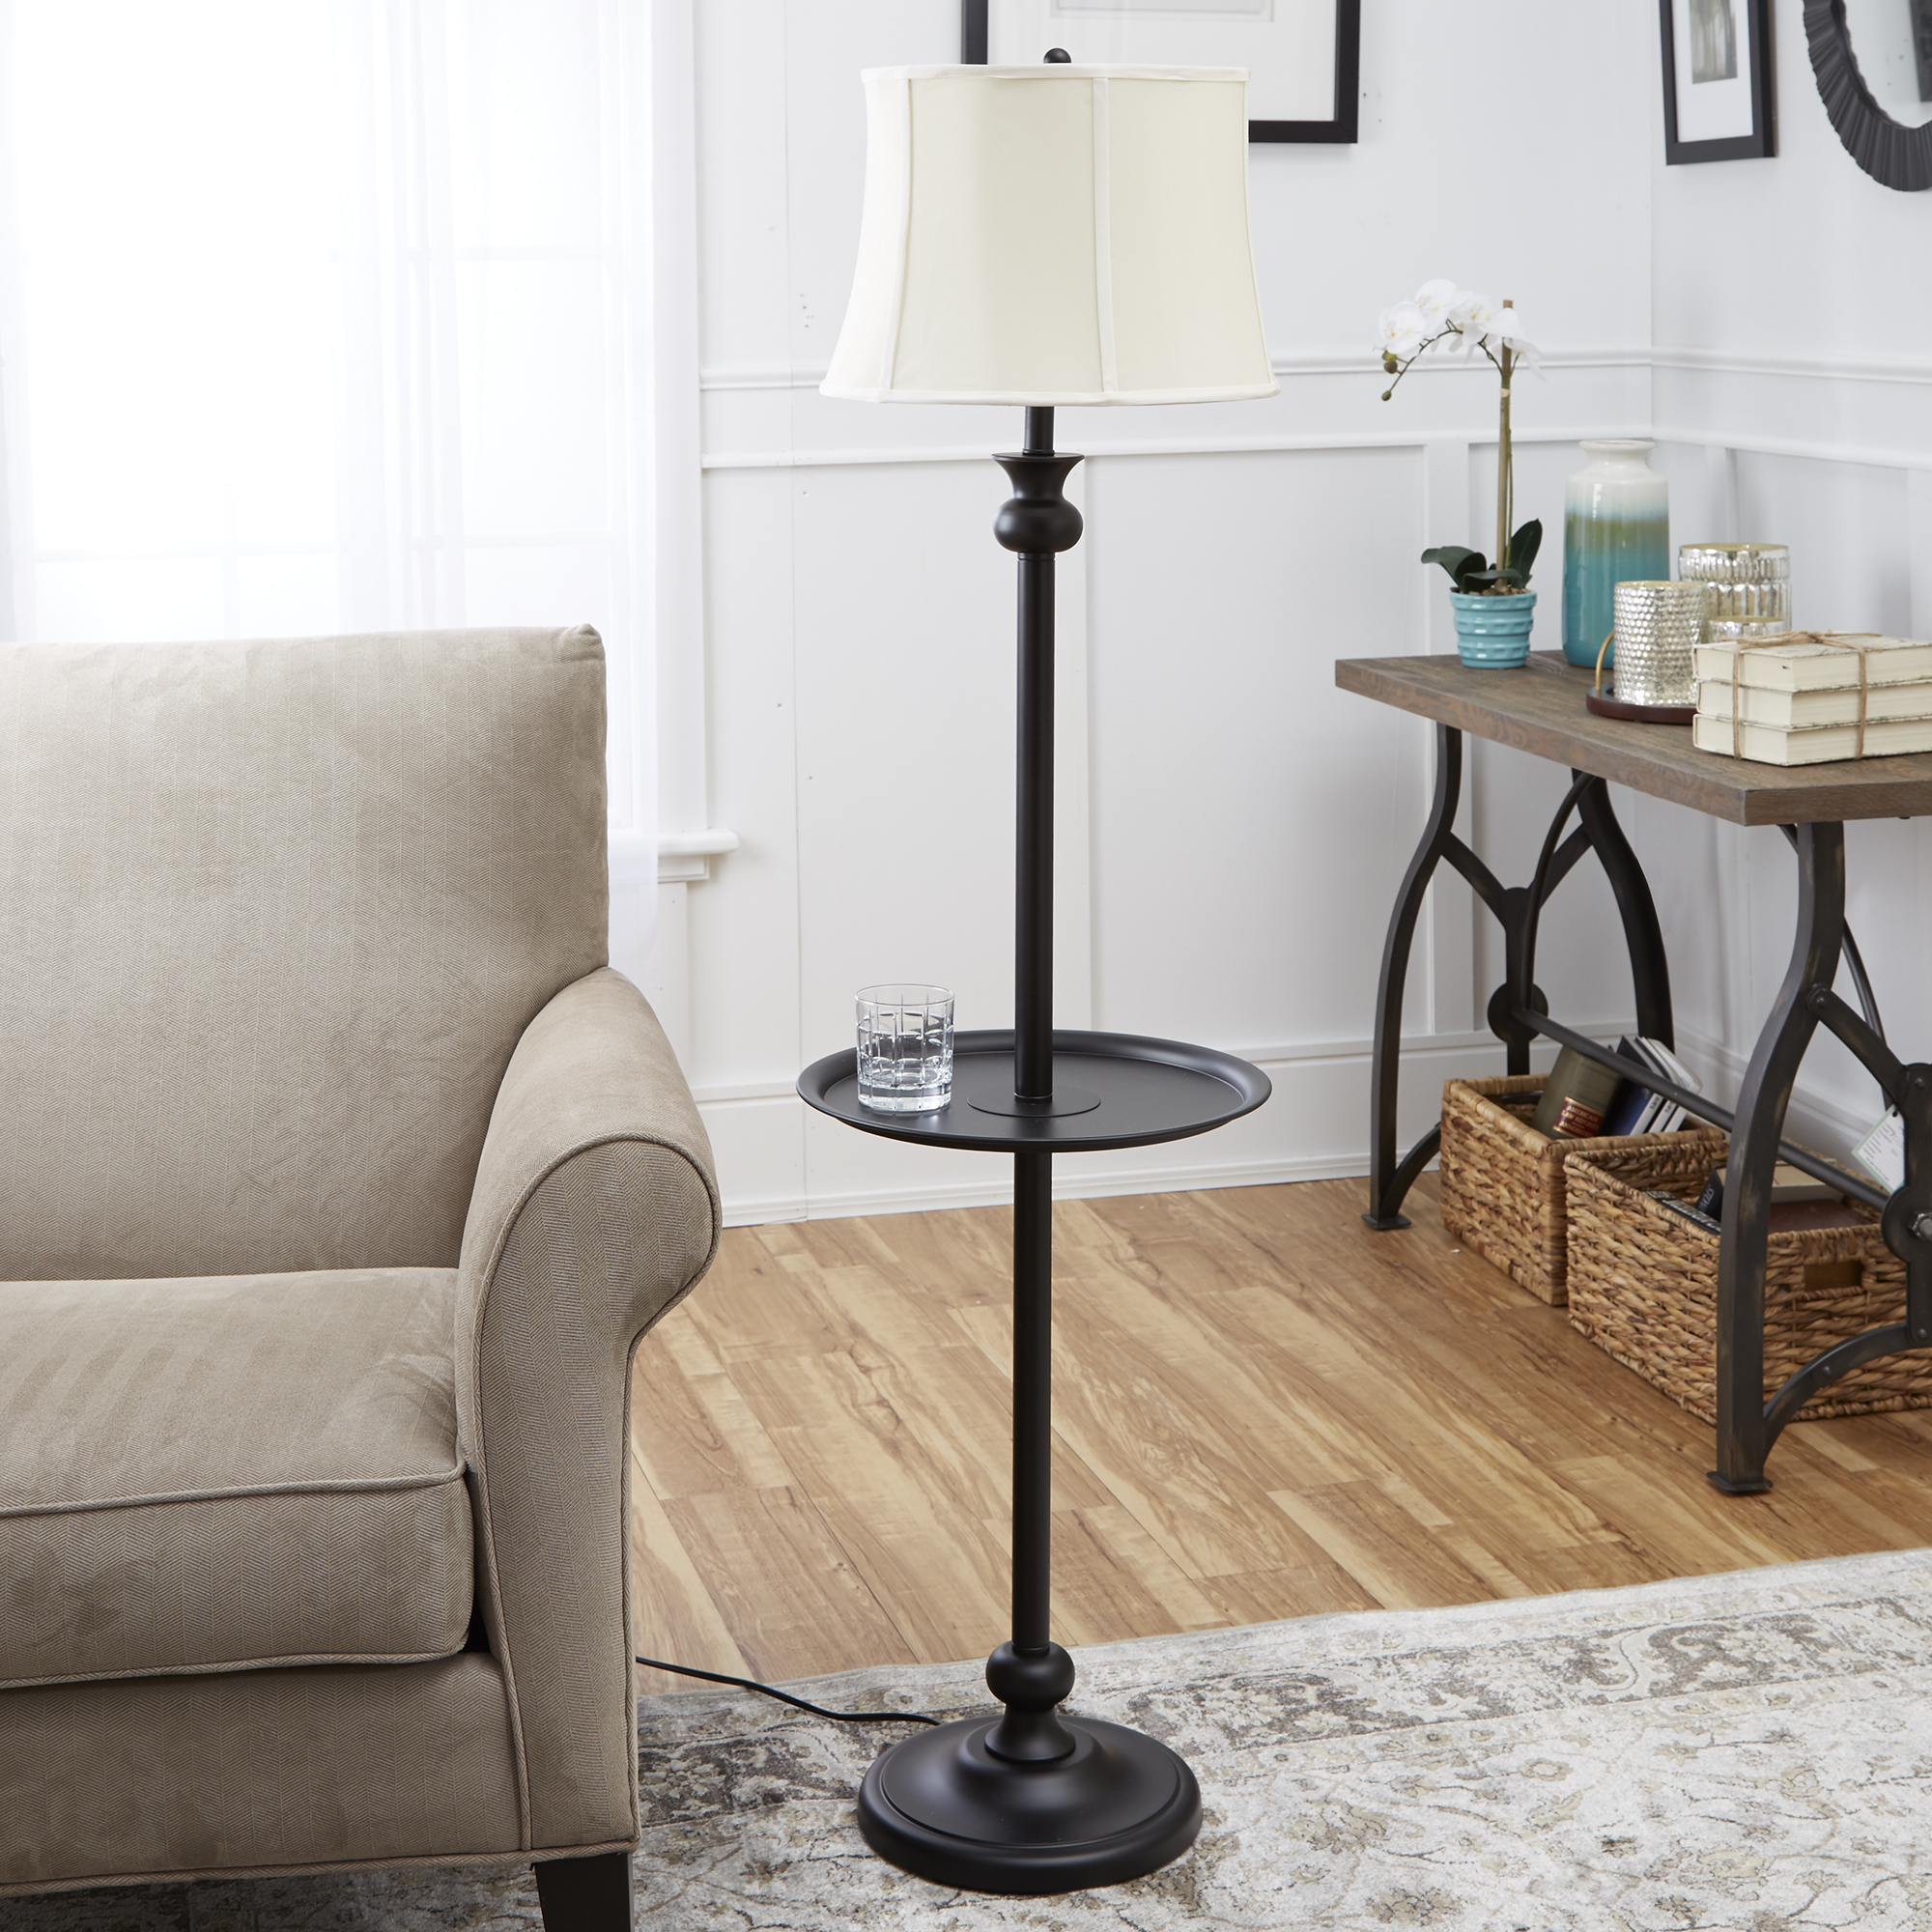 Better homes and gardens black floor lamp with tray